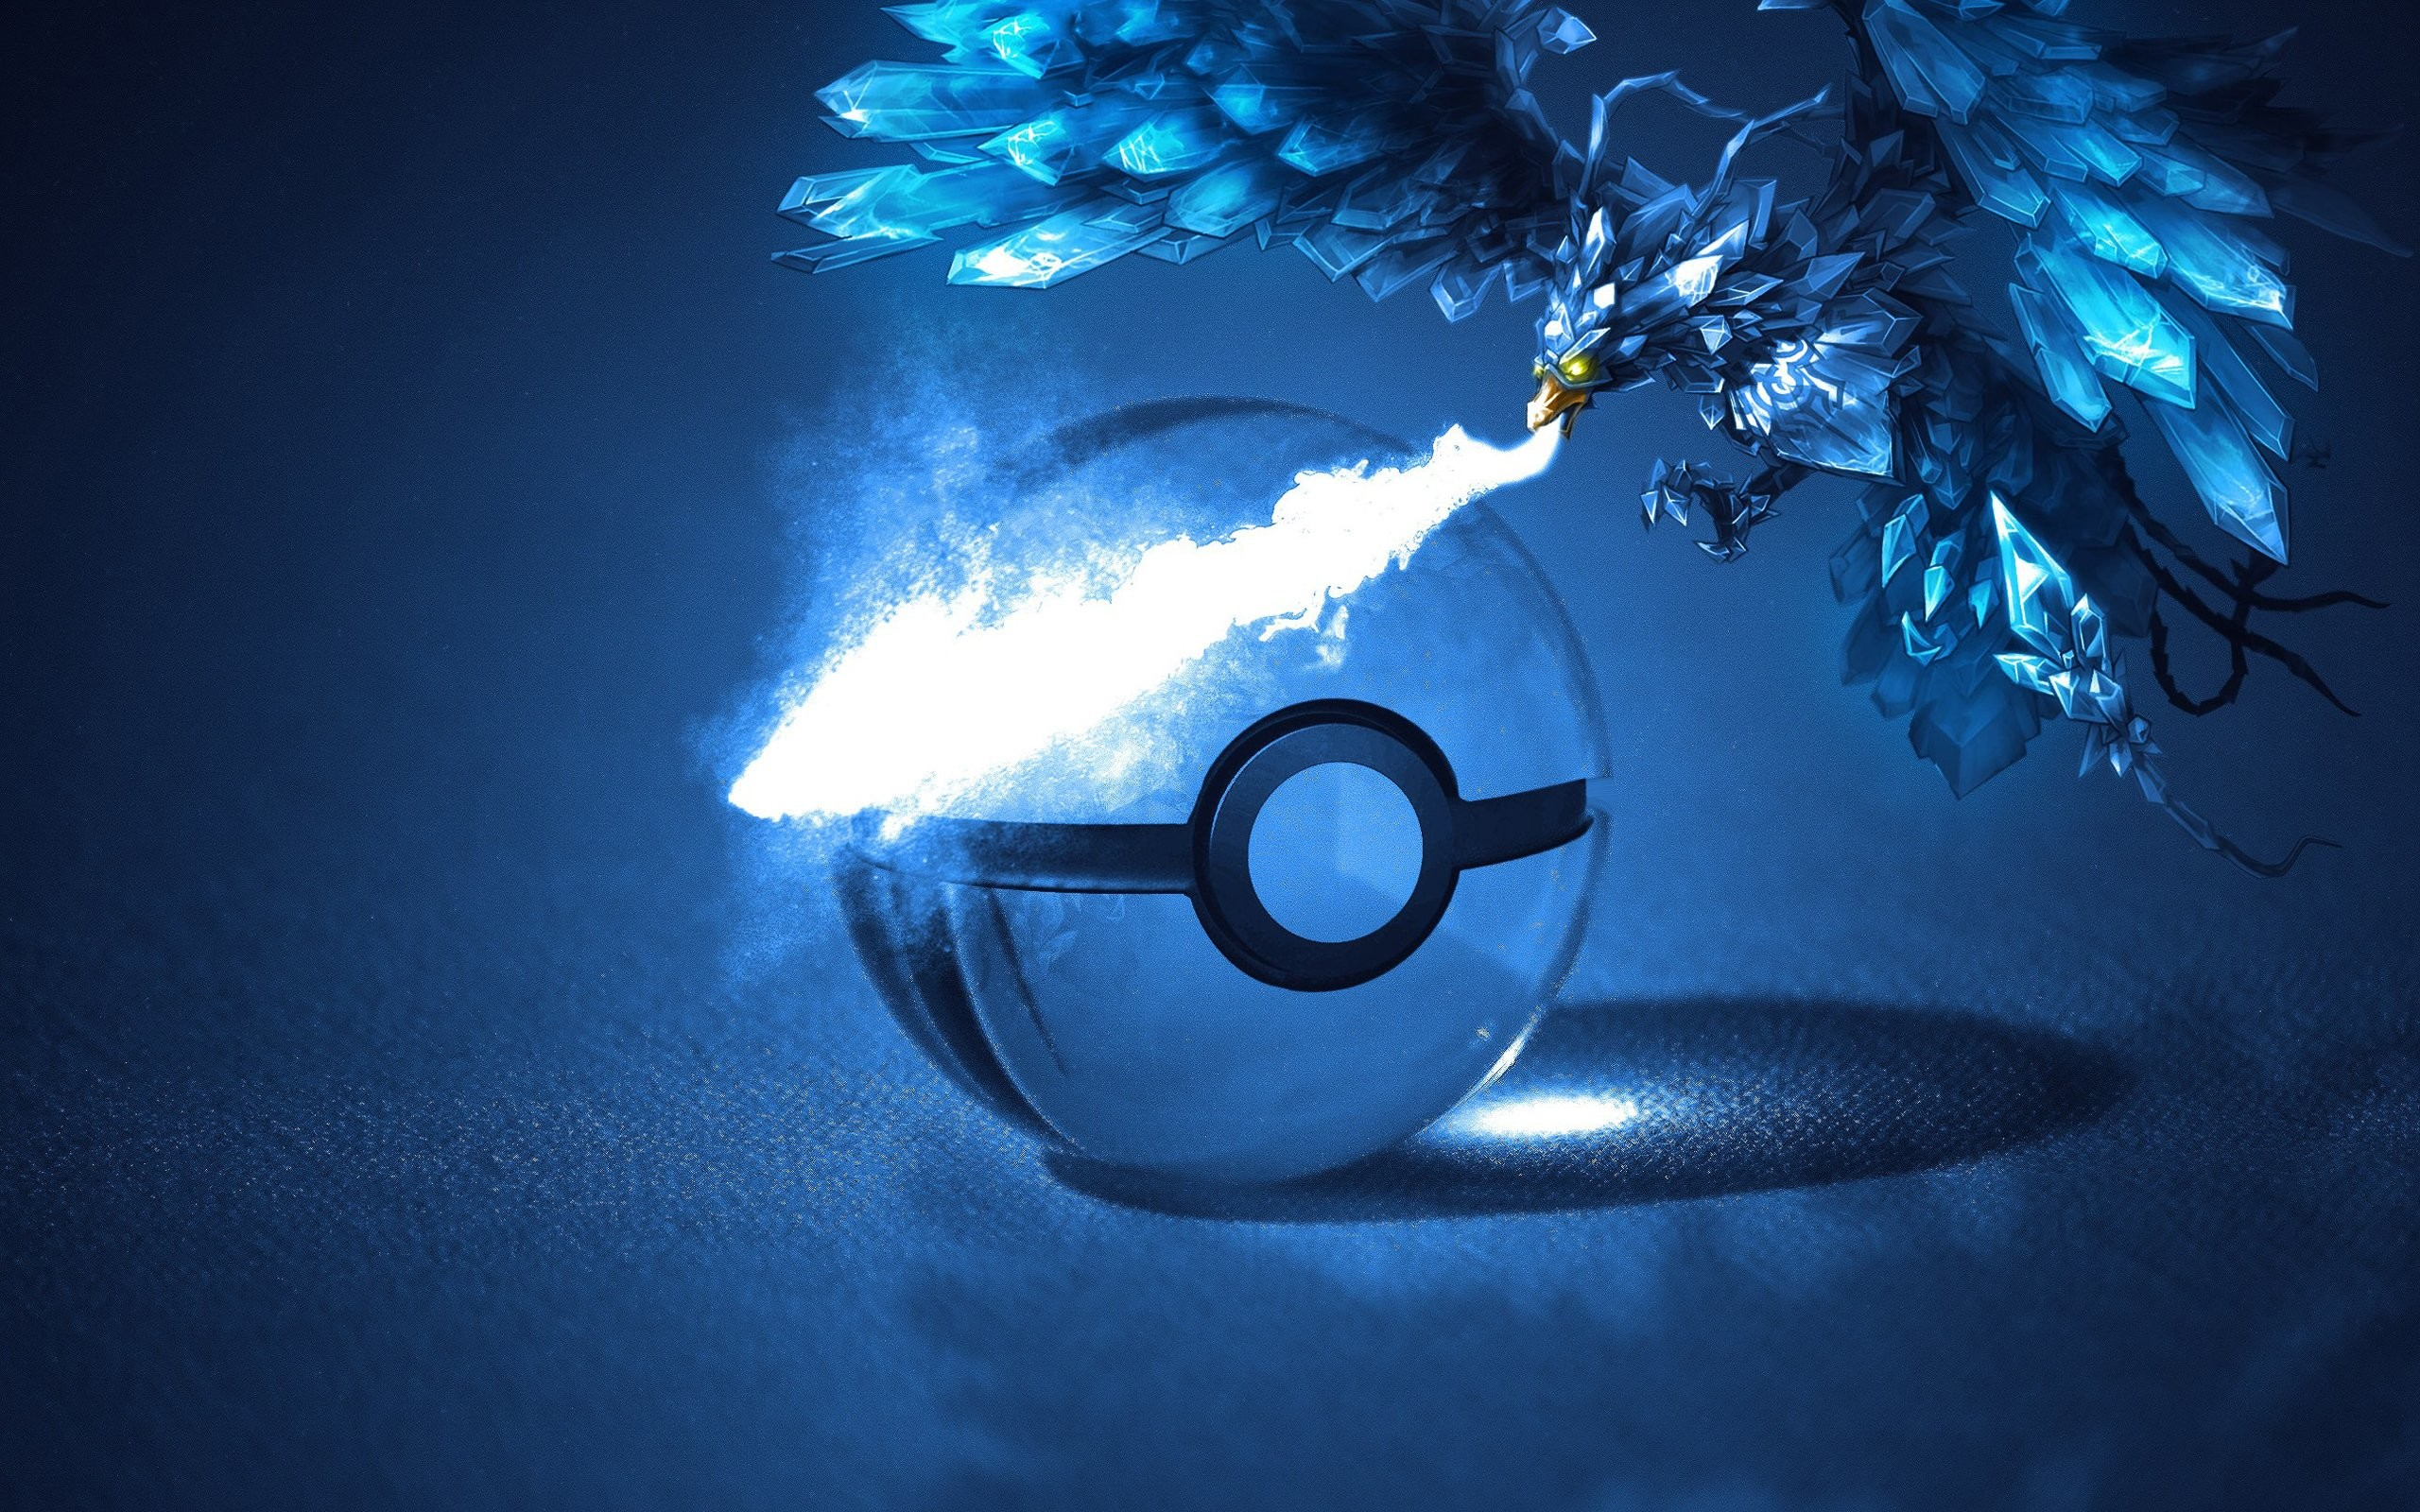 Articuno 565062. SHARE. TAGS: Images Background Christmas Pokemon